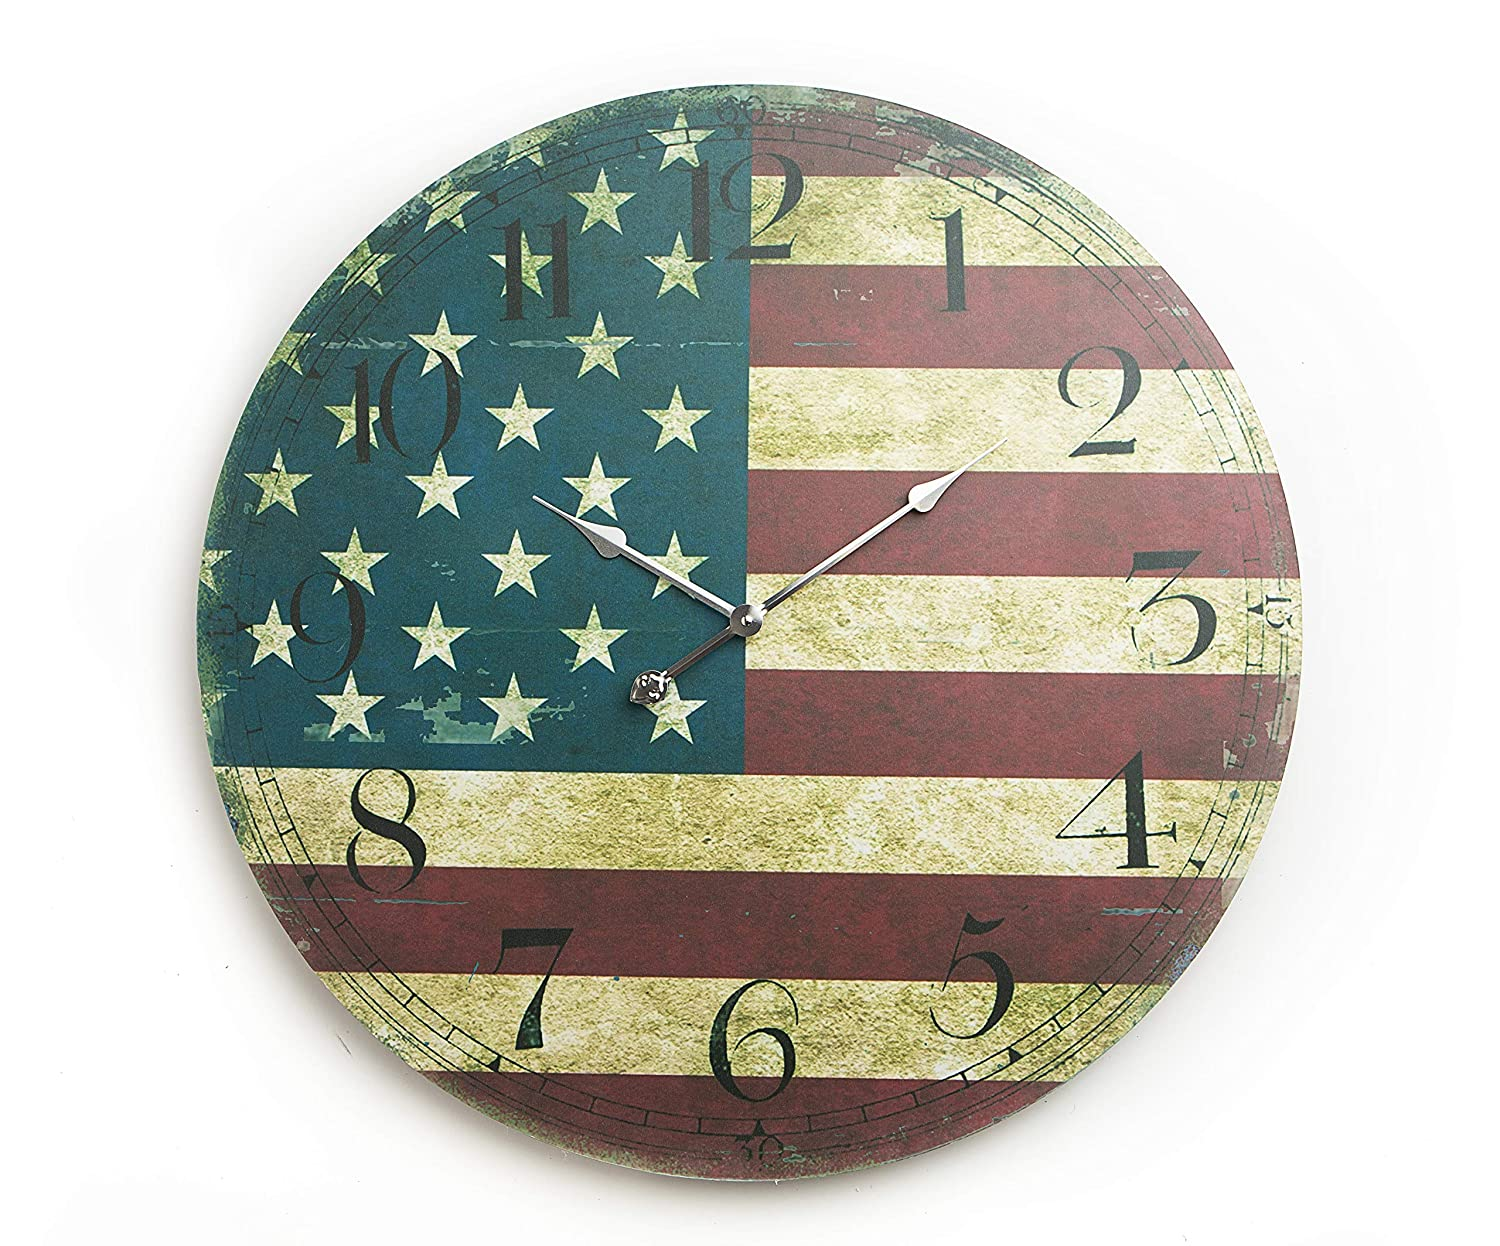 Mark One Home Goods Rustic Farmhouse Decorative Wall Clock 12 Inch, Yellow//Green//Blue